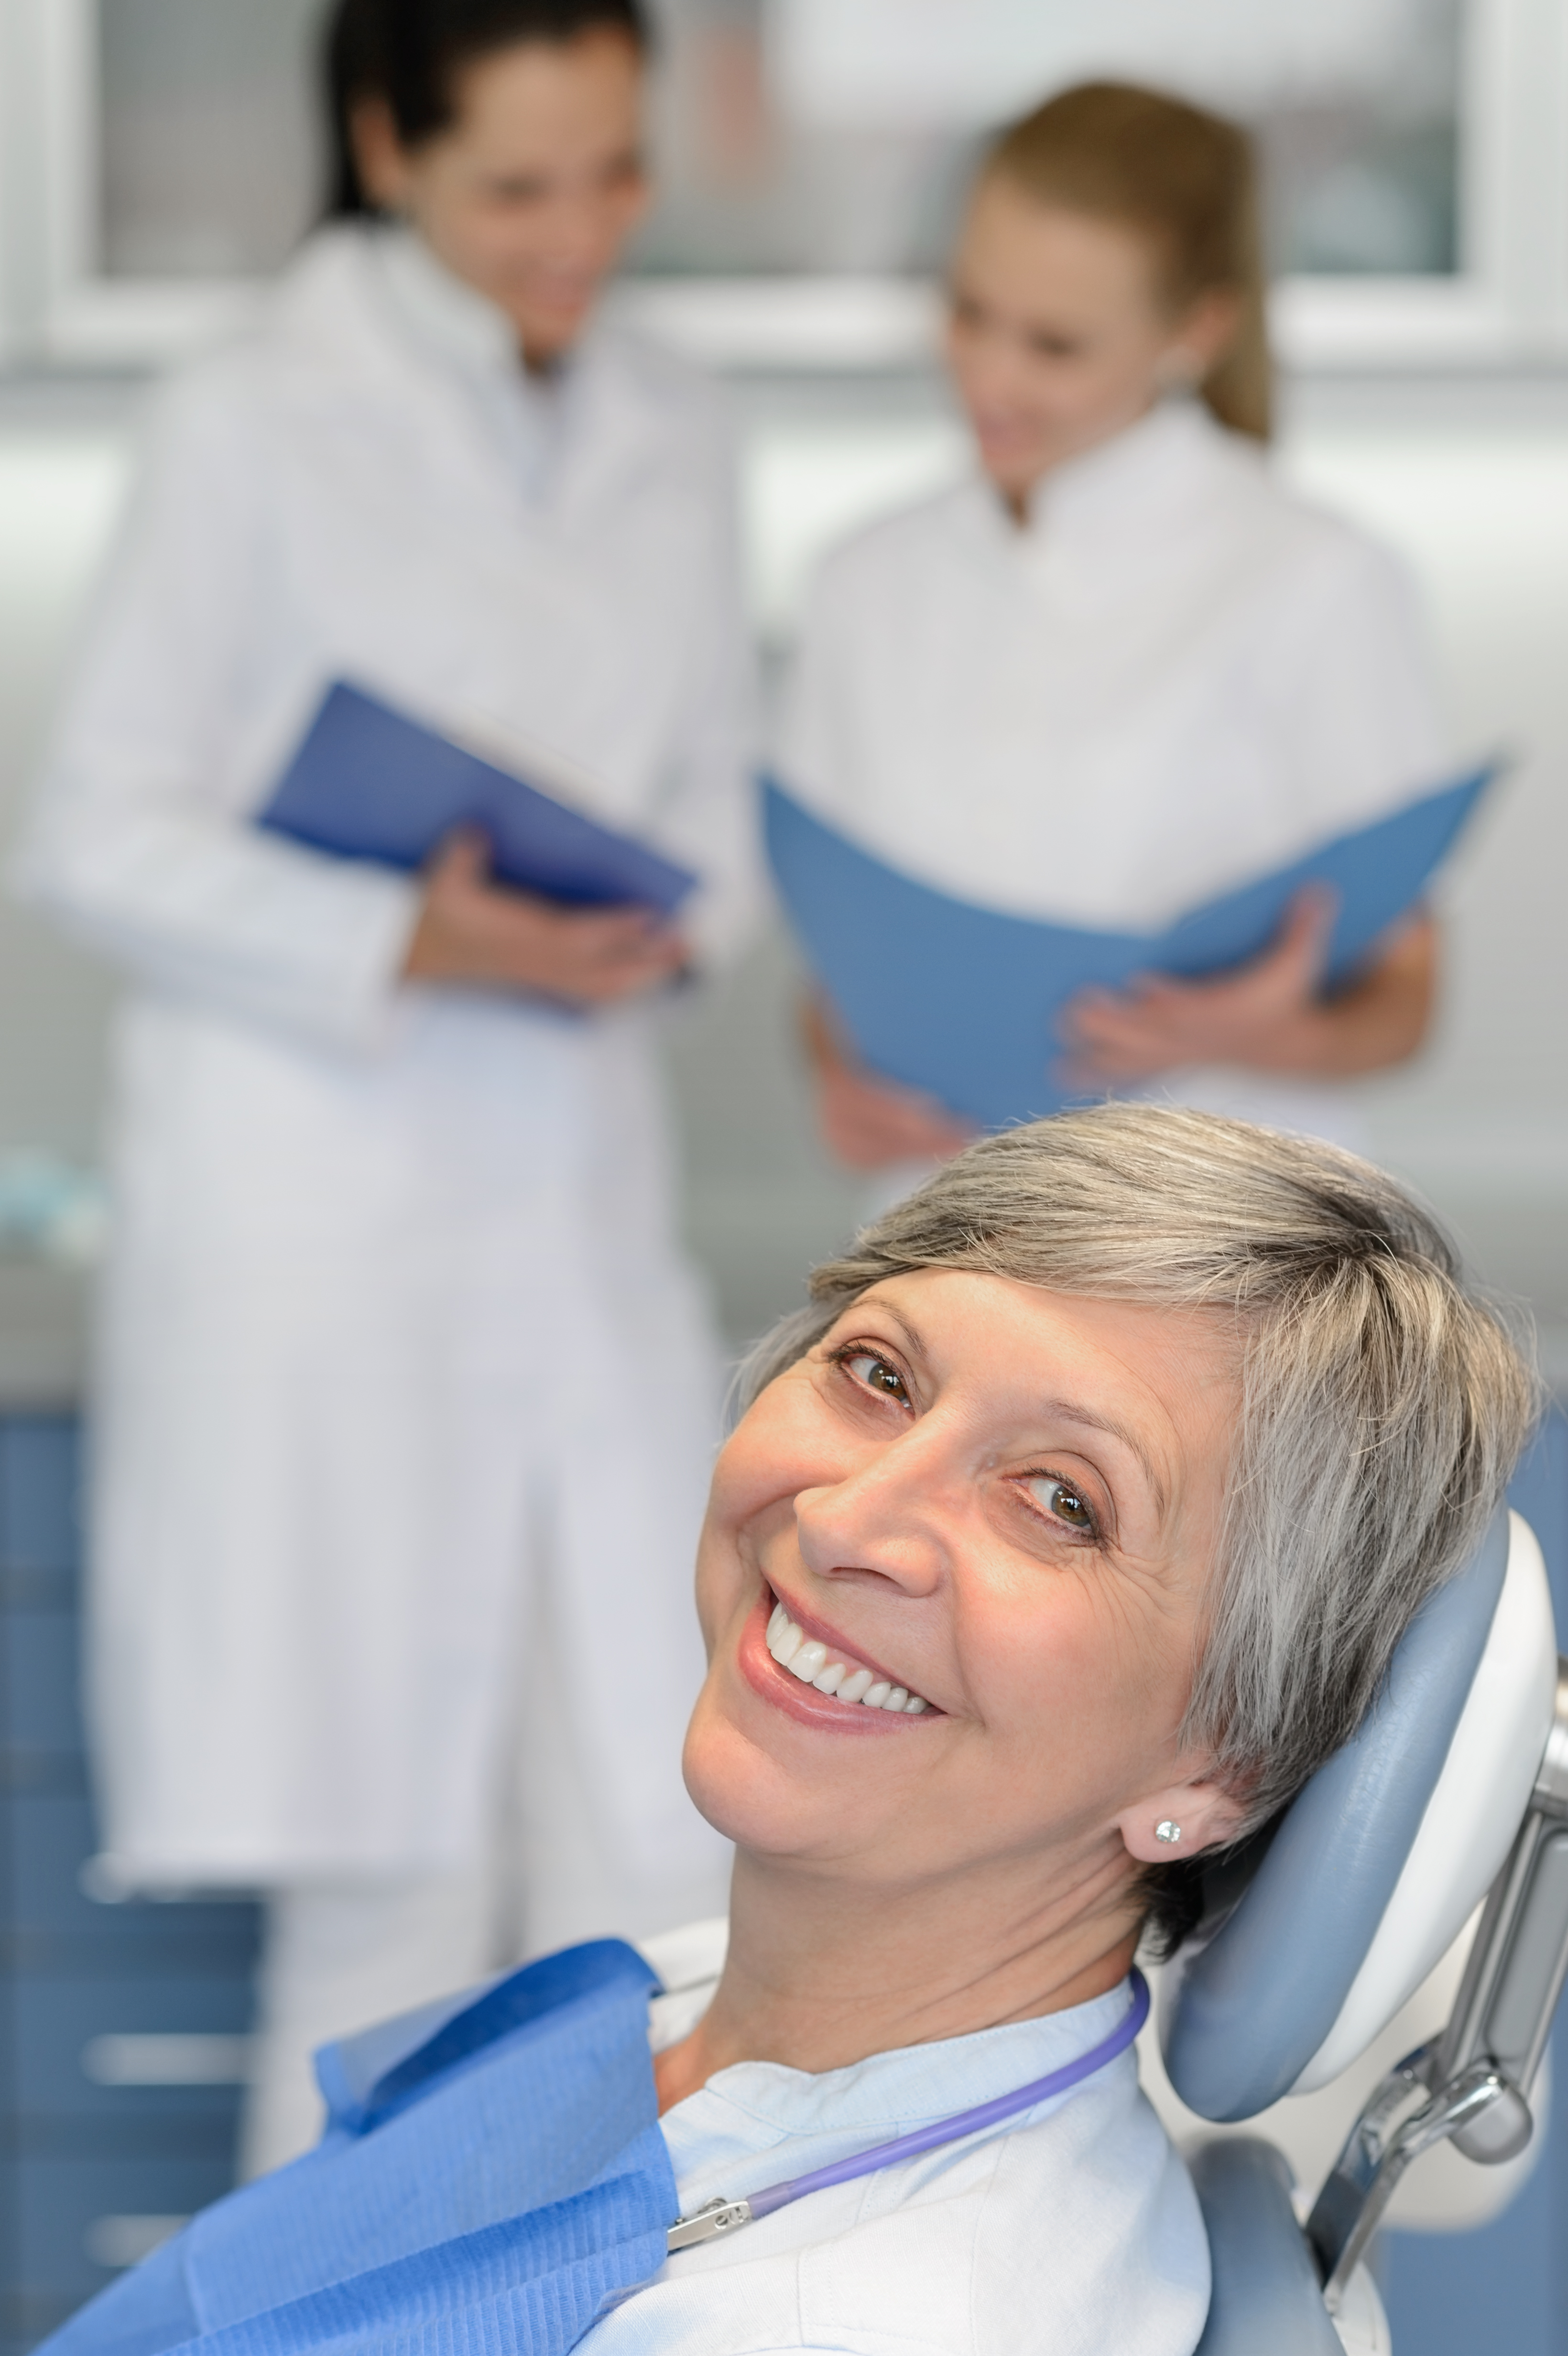 Mature Woman Sitting in Dental Chair Smiling